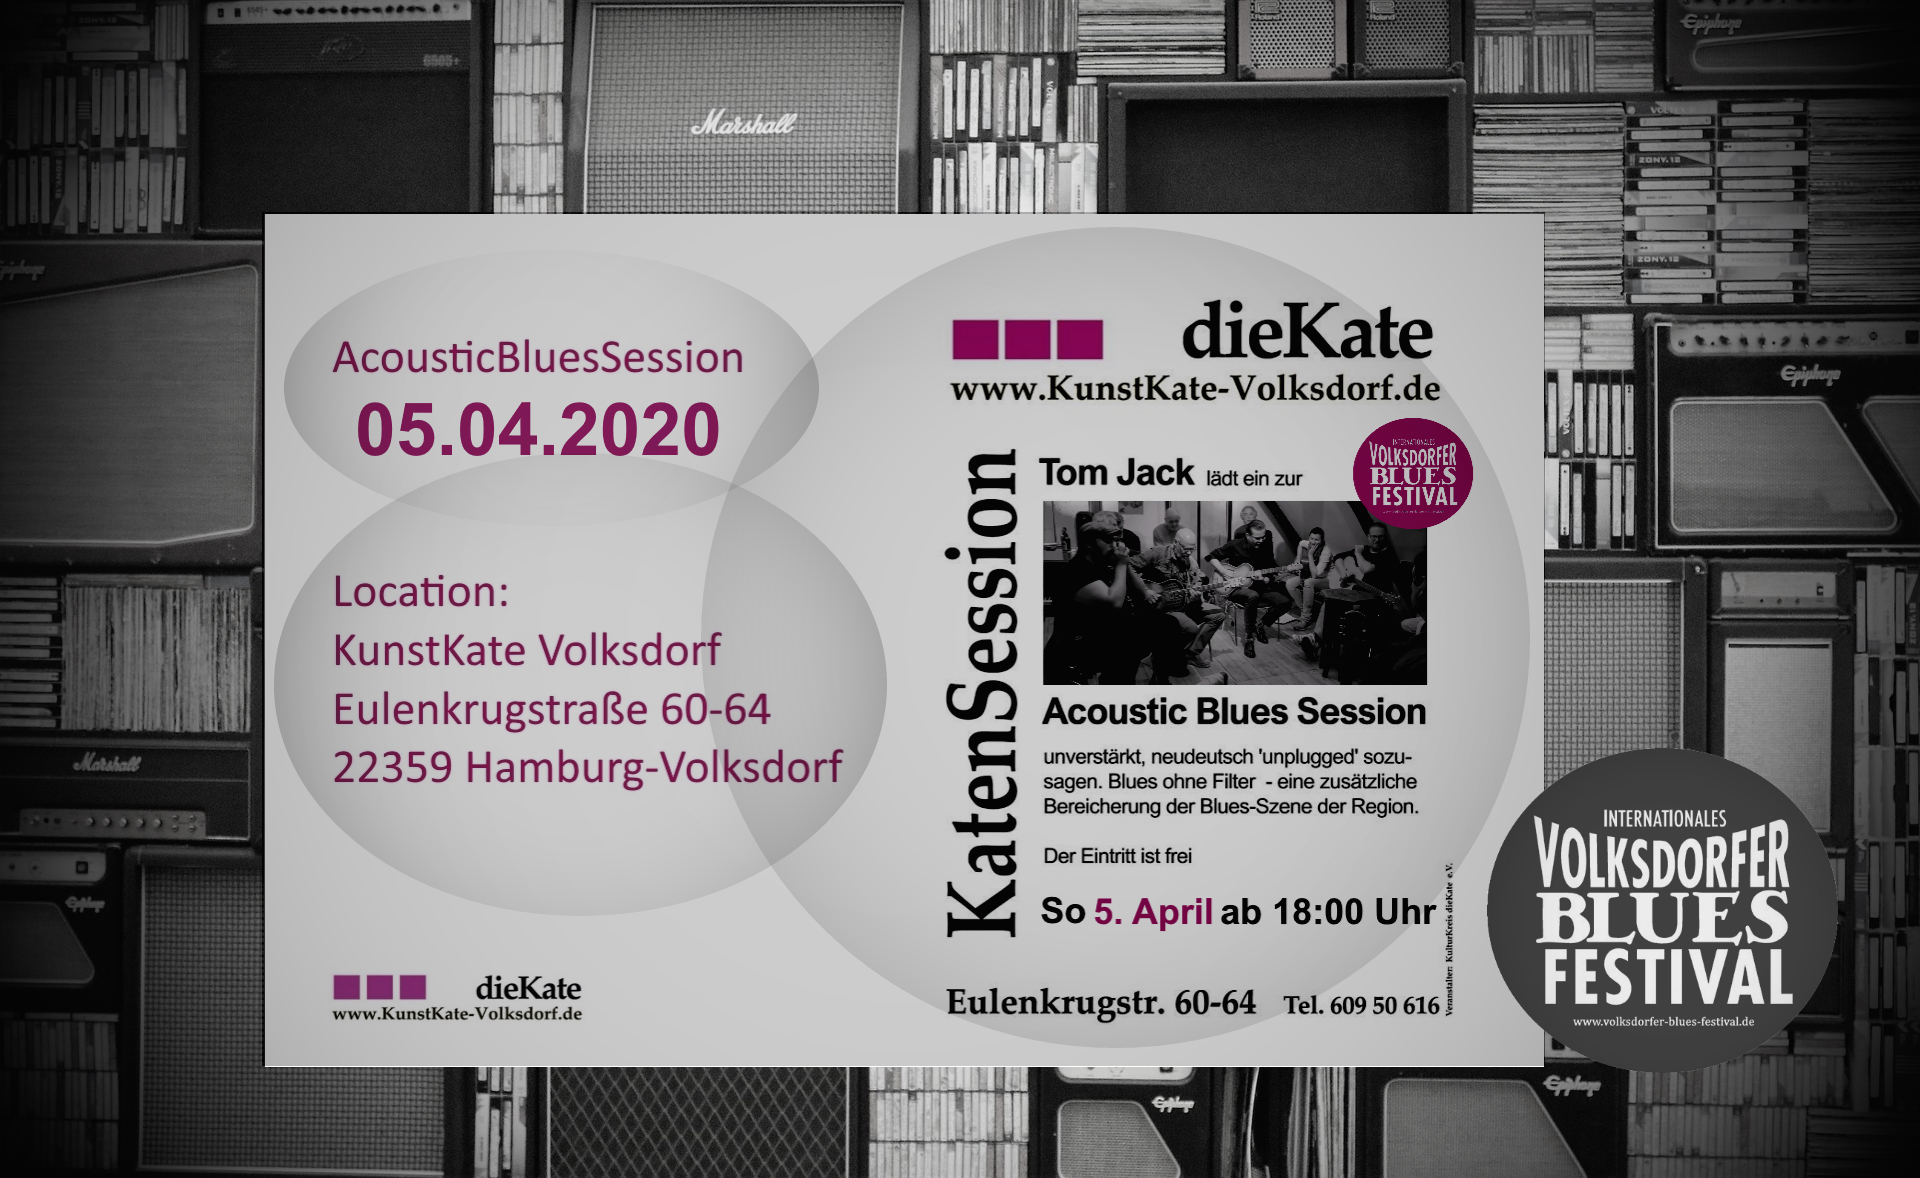 05.04.2020 – Acoustic Blues Session (ABS) – KunstKate Volksdorf